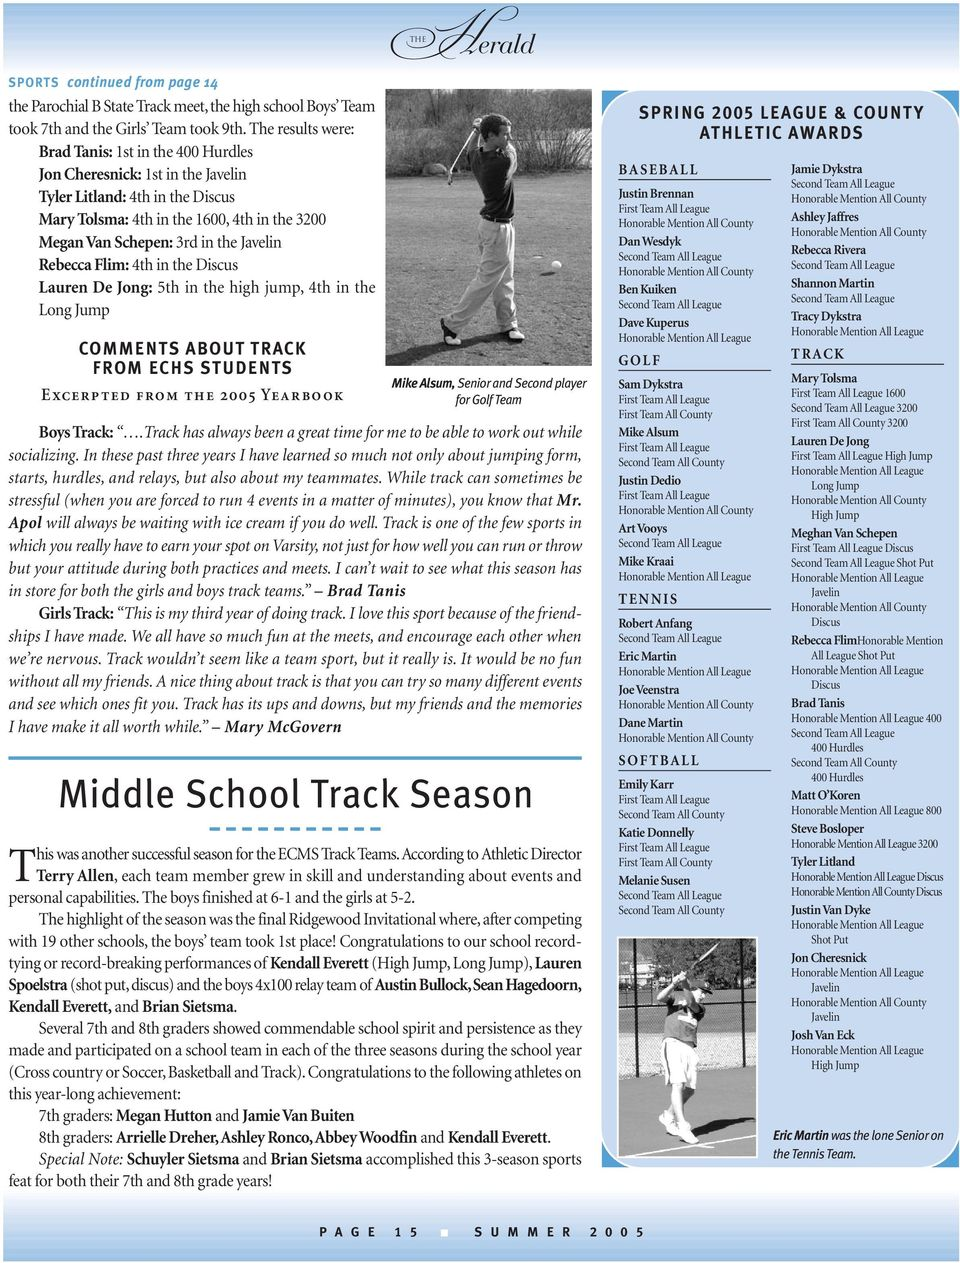 Javelin Rebecca Flim: 4th in the Discus Lauren De Jong: 5th in the high jump, 4th in the Long Jump COMMENTS ABOUT TRACK FROM ECHS STUDENTS Excerpted from the 2005 Yearbook Mike Alsum, Senior and